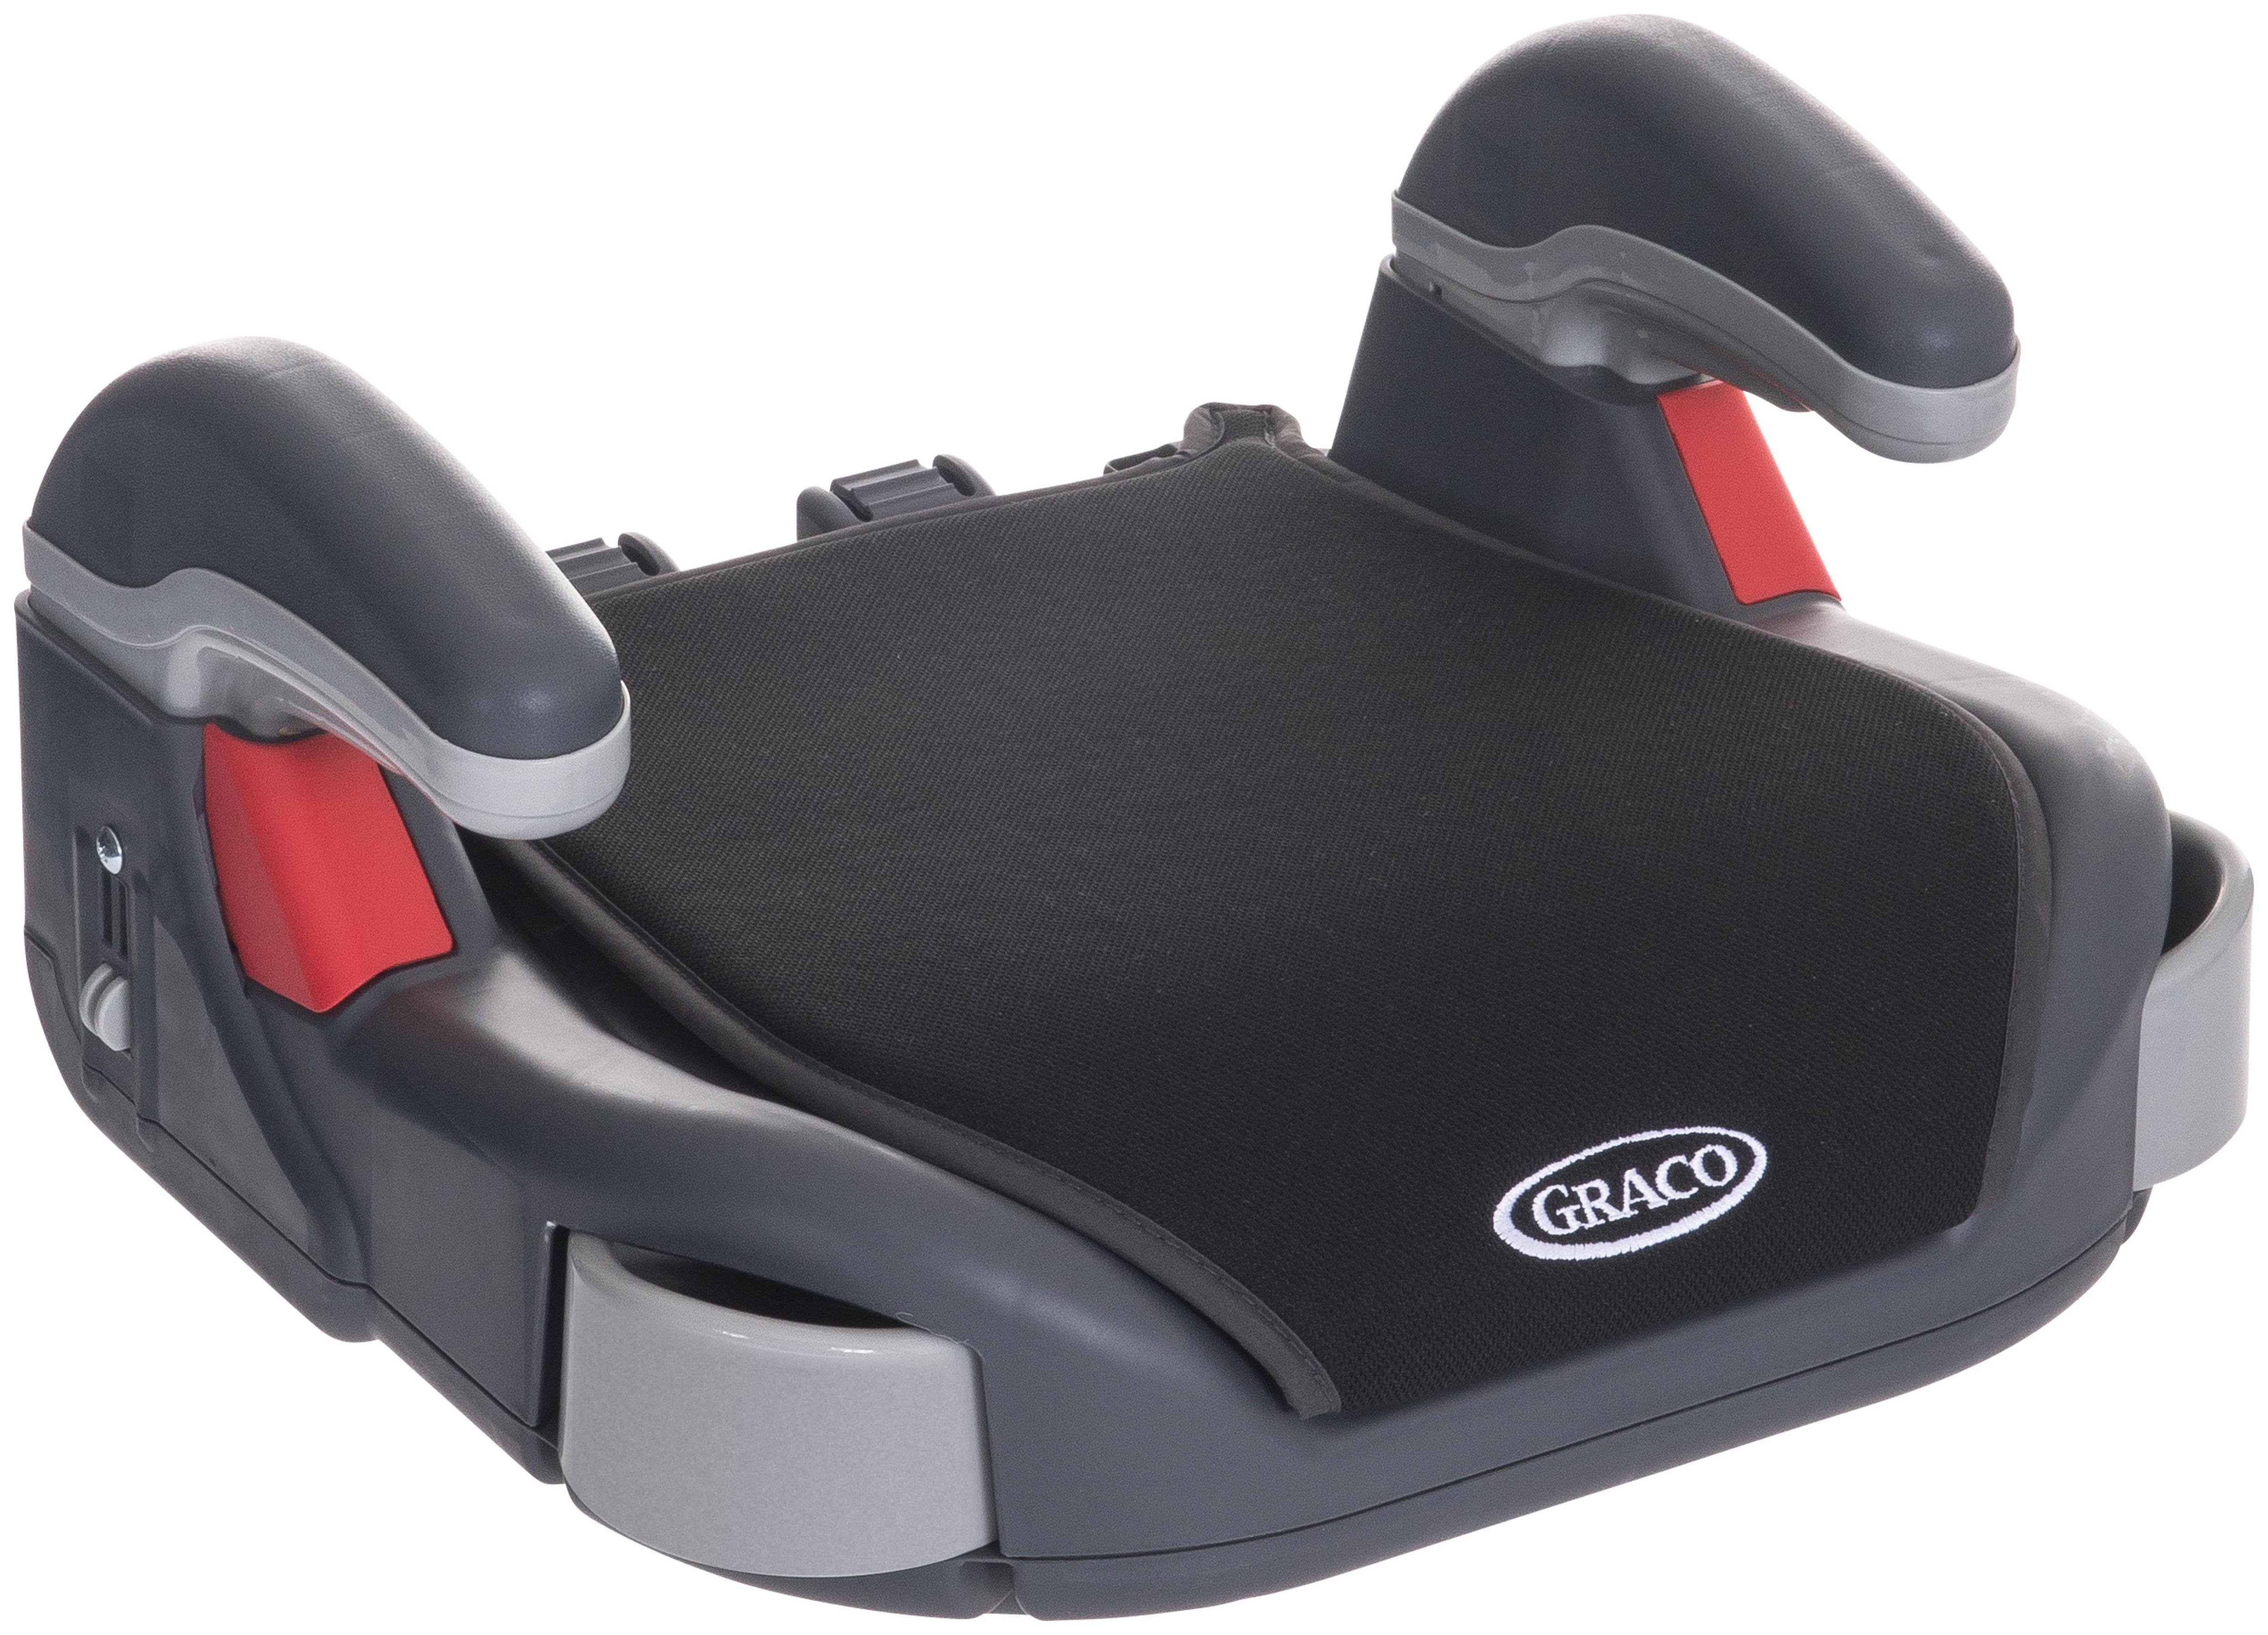 Image of Graco Midnight Black Basic Booster Seat.